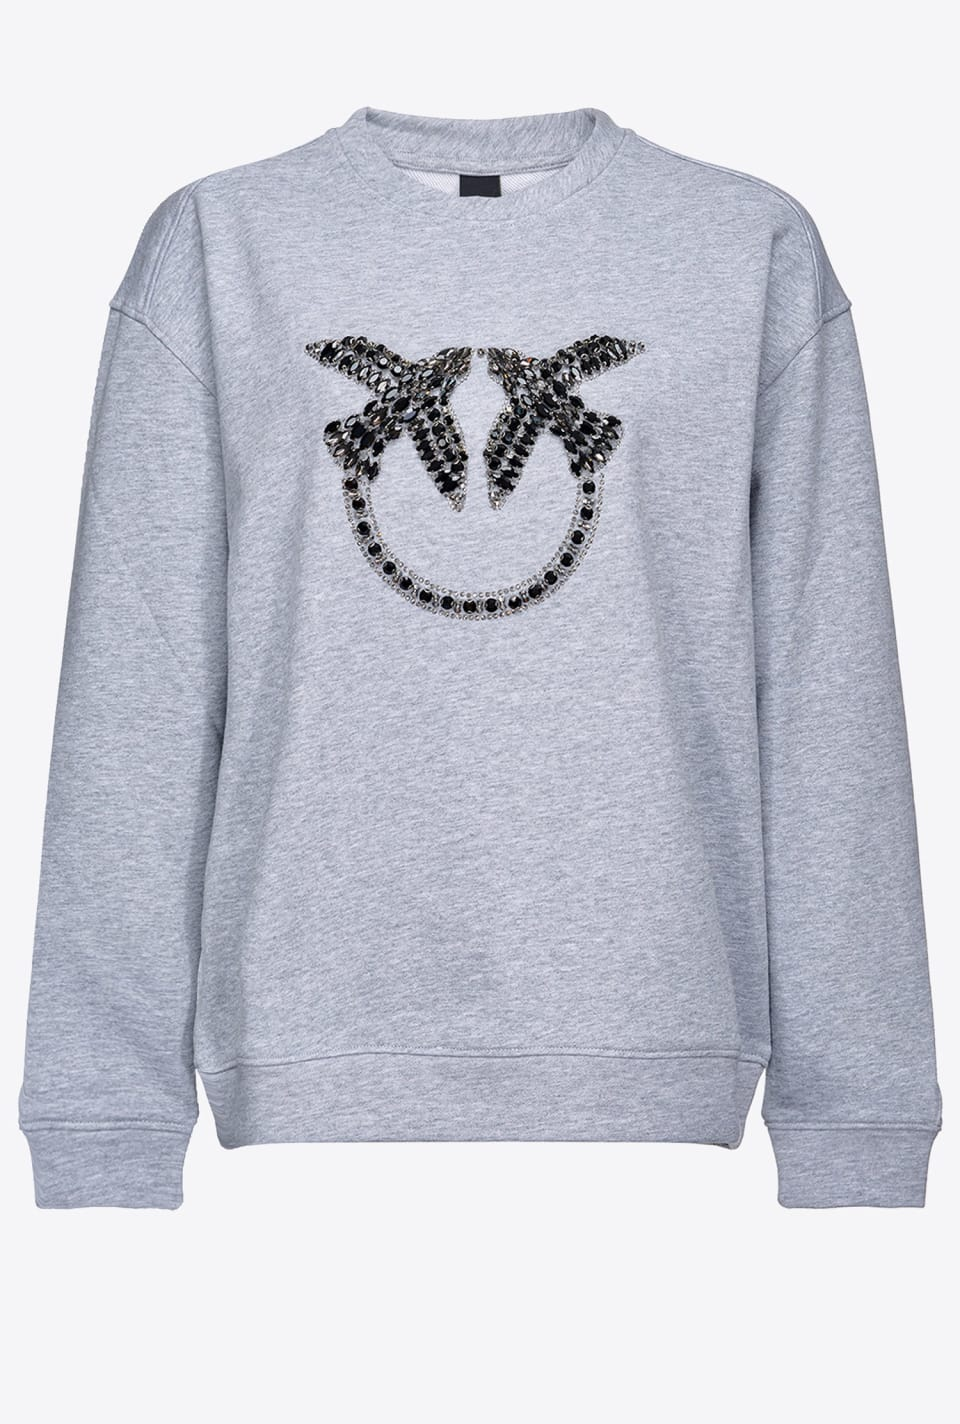 Sweat-shirt avec broderie Love Birds - Pinko